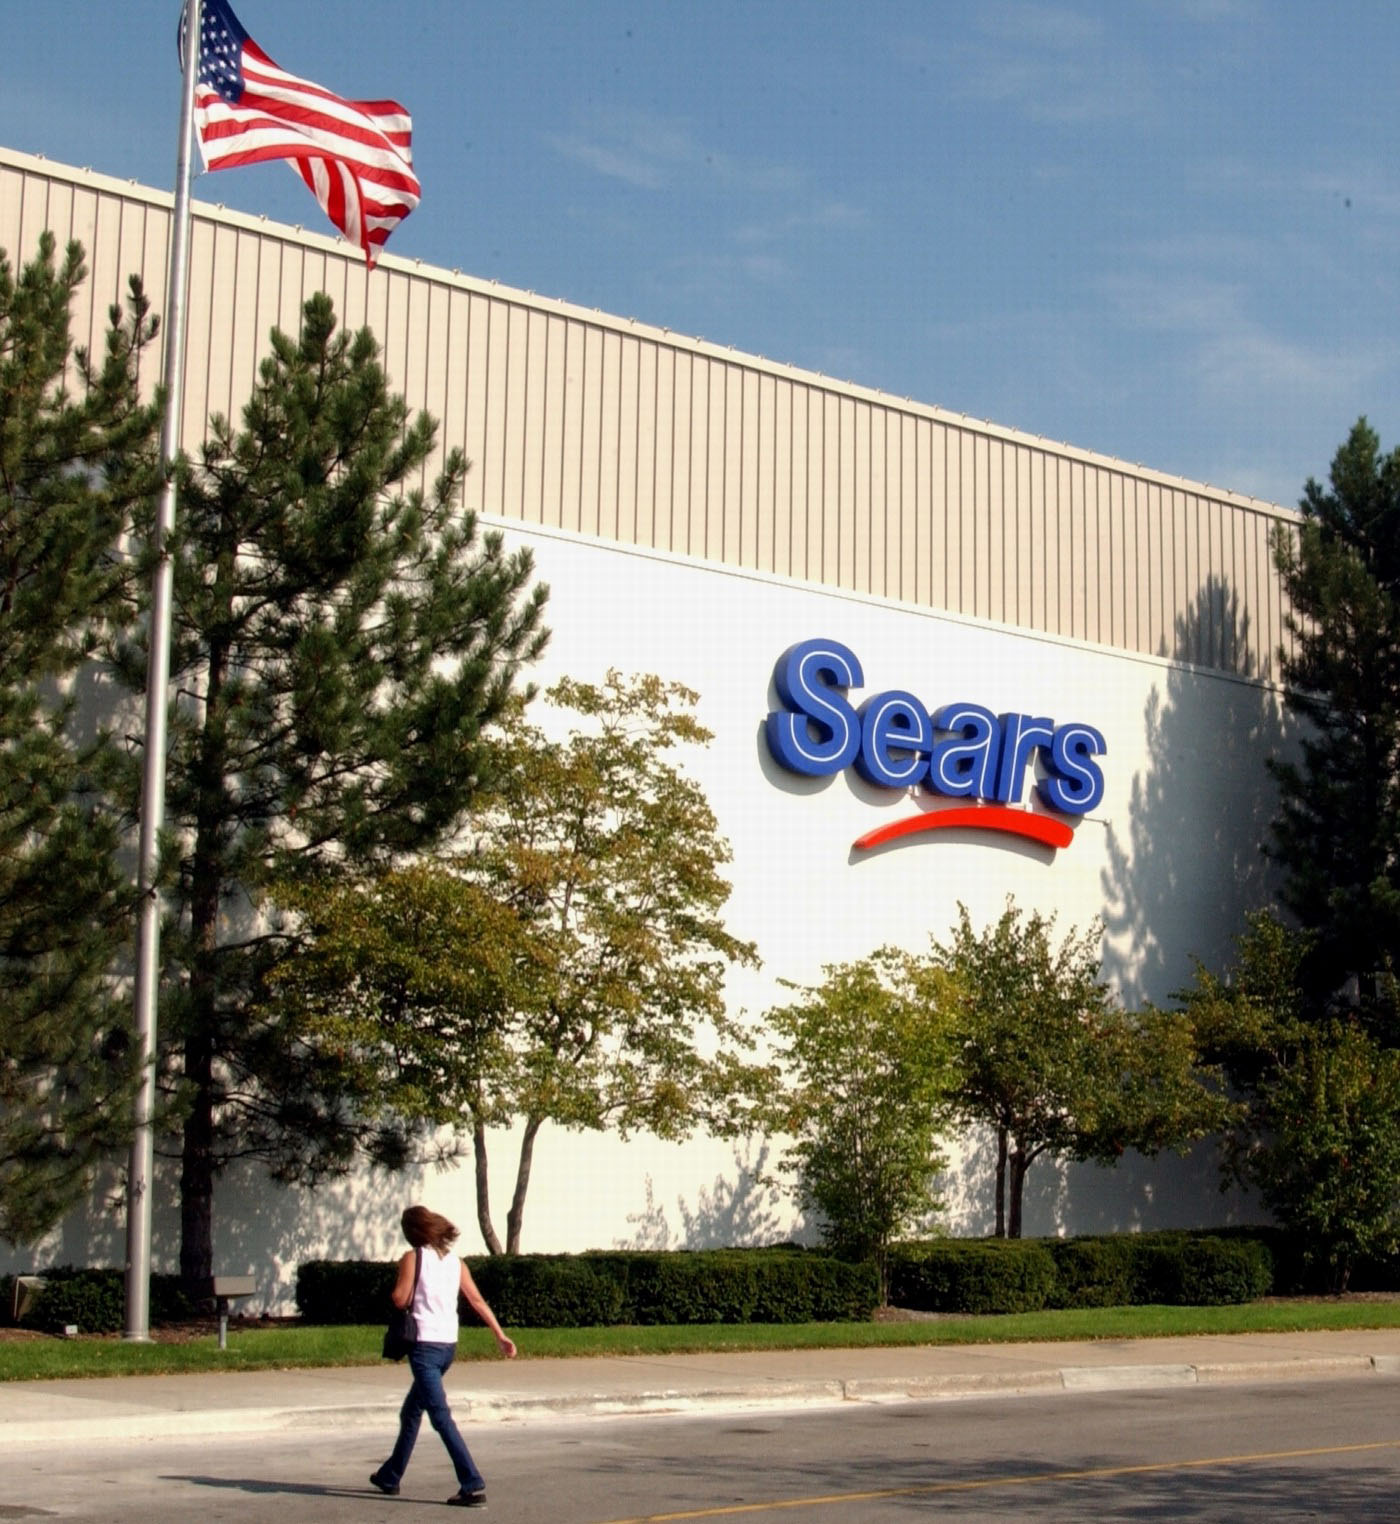 Sears exterior with American Flag